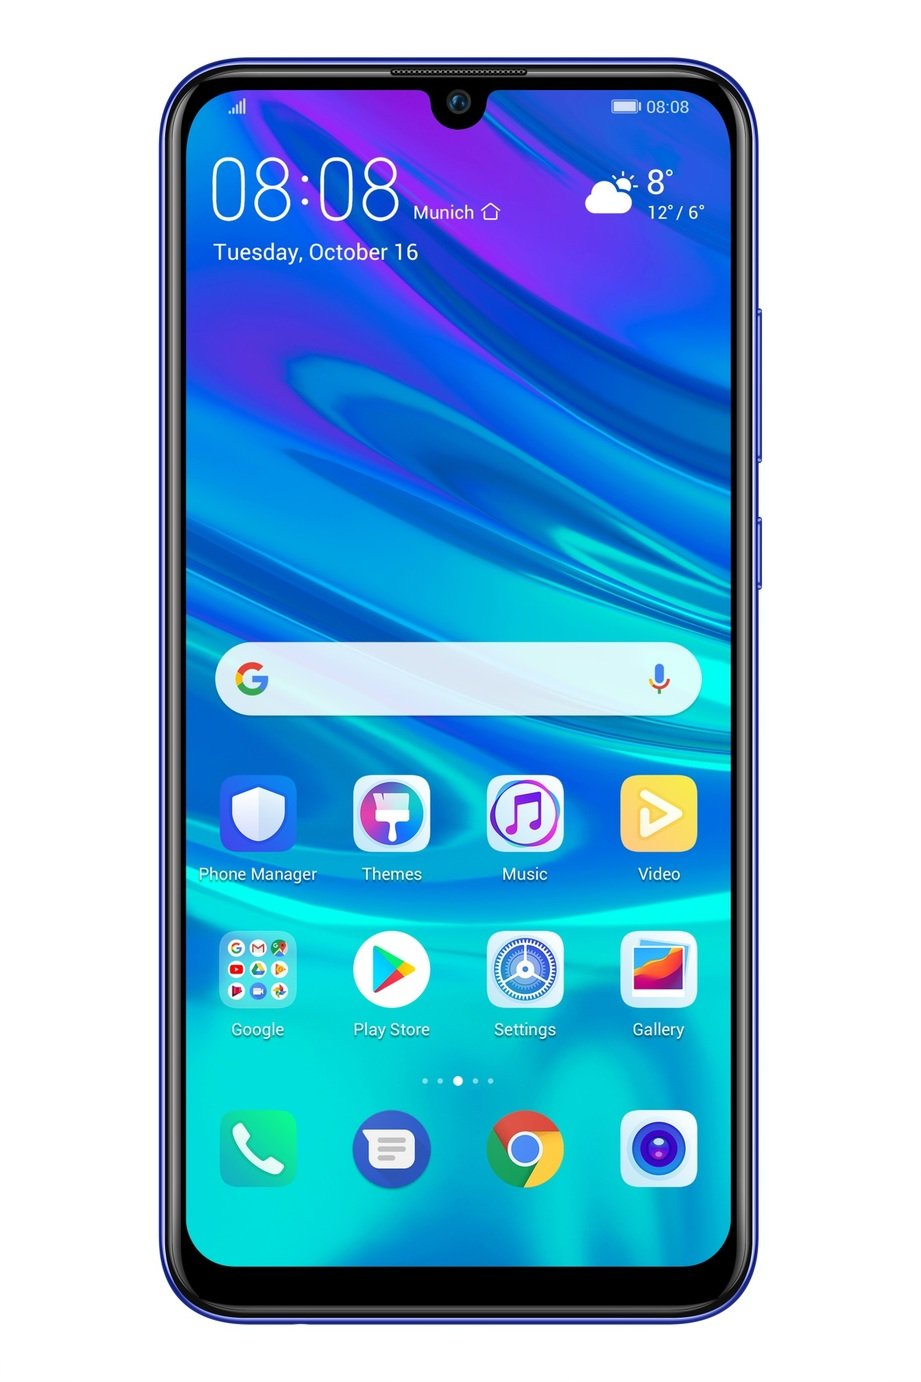 HUAWEI P Smart+ 2019 64 GB 6.21 inch FHD+ Dewdrop FullView Smartphone with Ultra-Wide Triple Camera, Android Sim-Free Mobile Phone, 3400 mAh Large Battery, UK Version, Starlight Blue Best Price and Cheapest